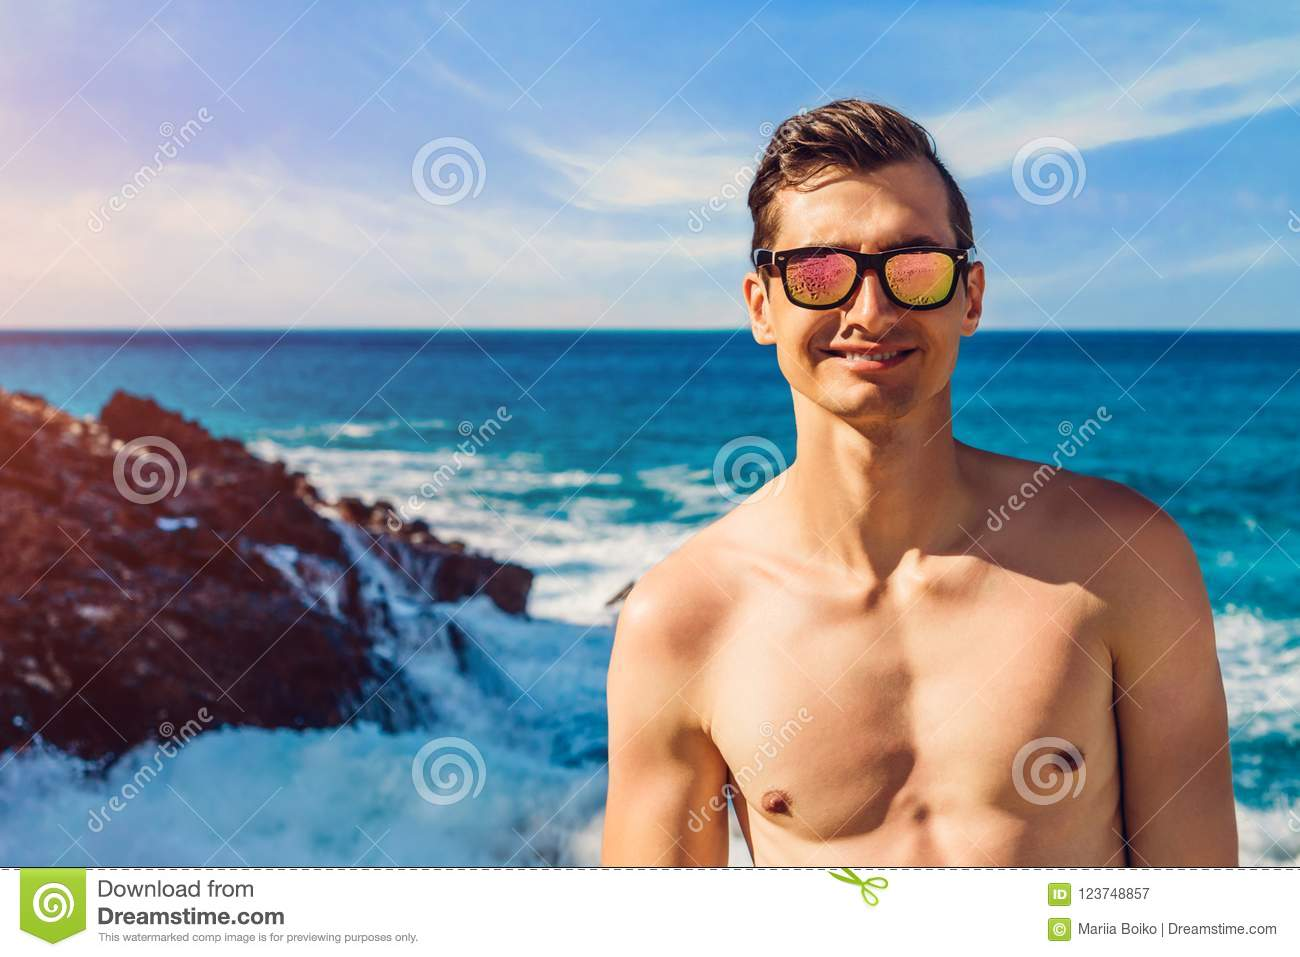 704e23b23a Happy handsome man walks on the beach by sea coast. Topless guy wearing  sunglasses. Summer vacation